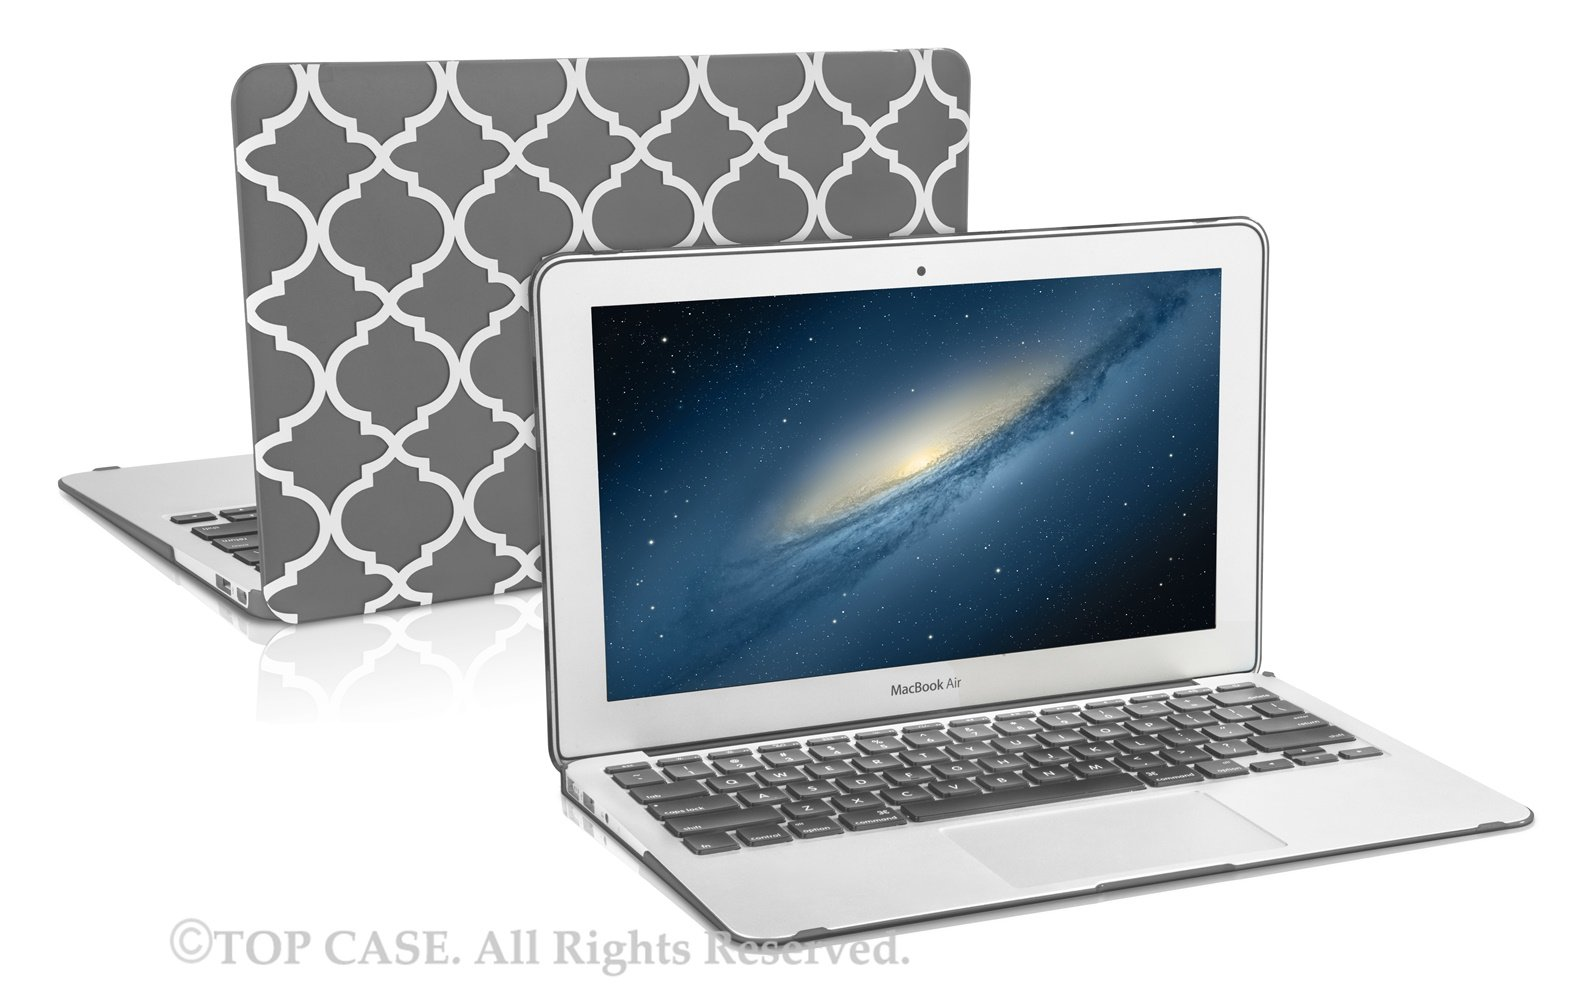 TopCase Quatrefoil/Moroccan Trellis Gray Ultra Slim Light Weight Rubberized Hard Case Cover for MacBook Air 11'' Model: A1370 and A1465 by TOP CASE (Image #3)